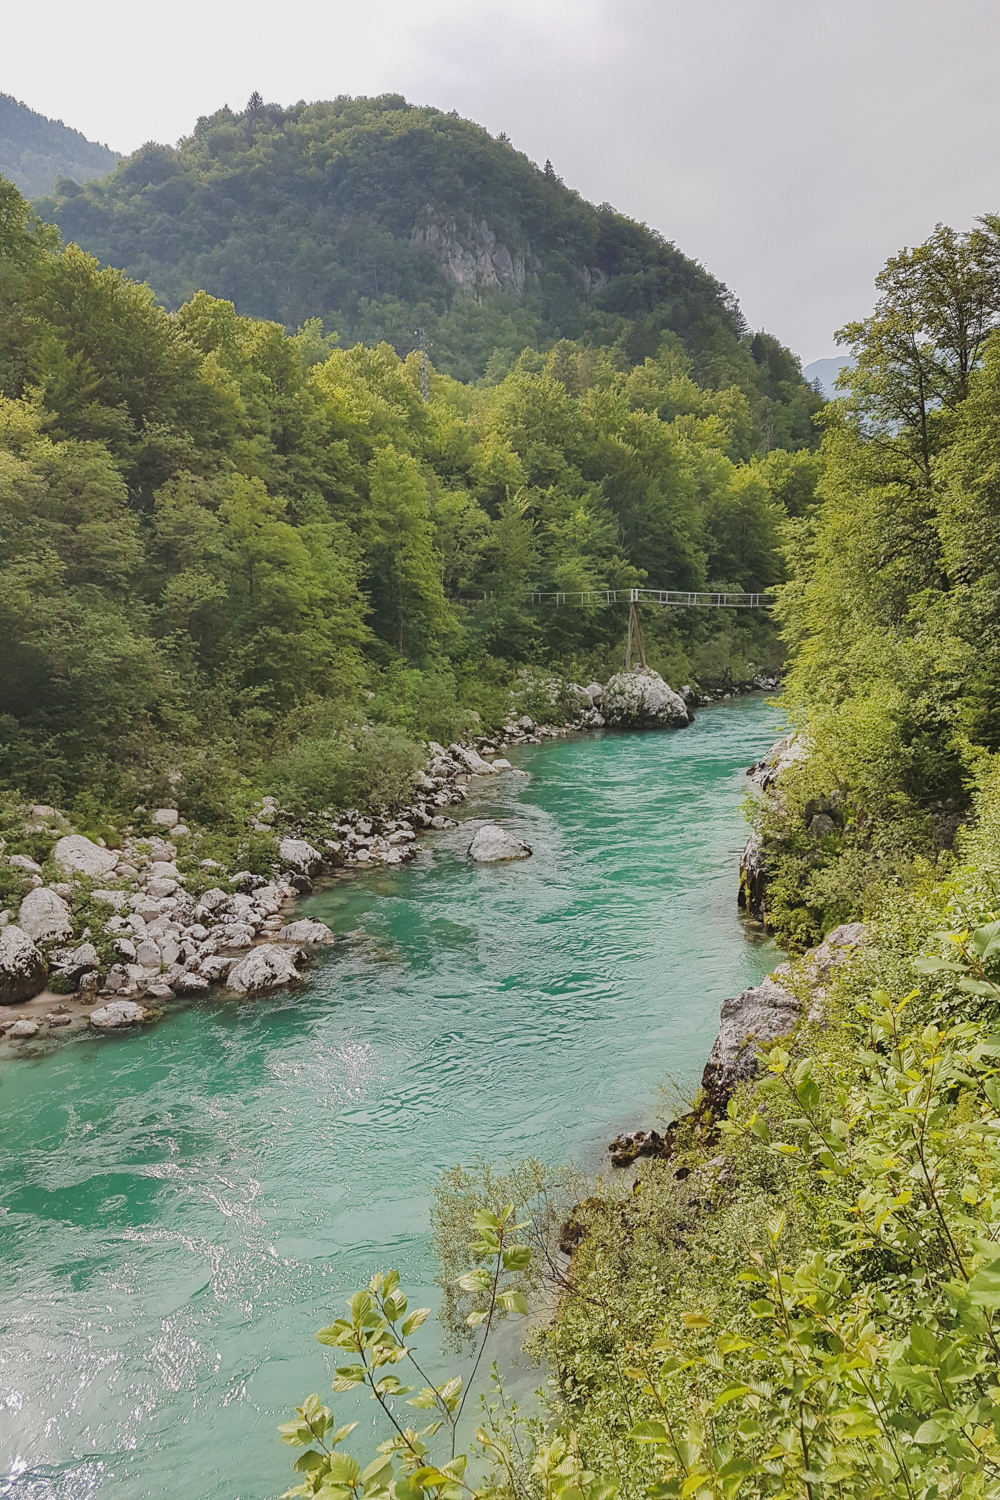 Soca River at Kobarid, Soca Valley